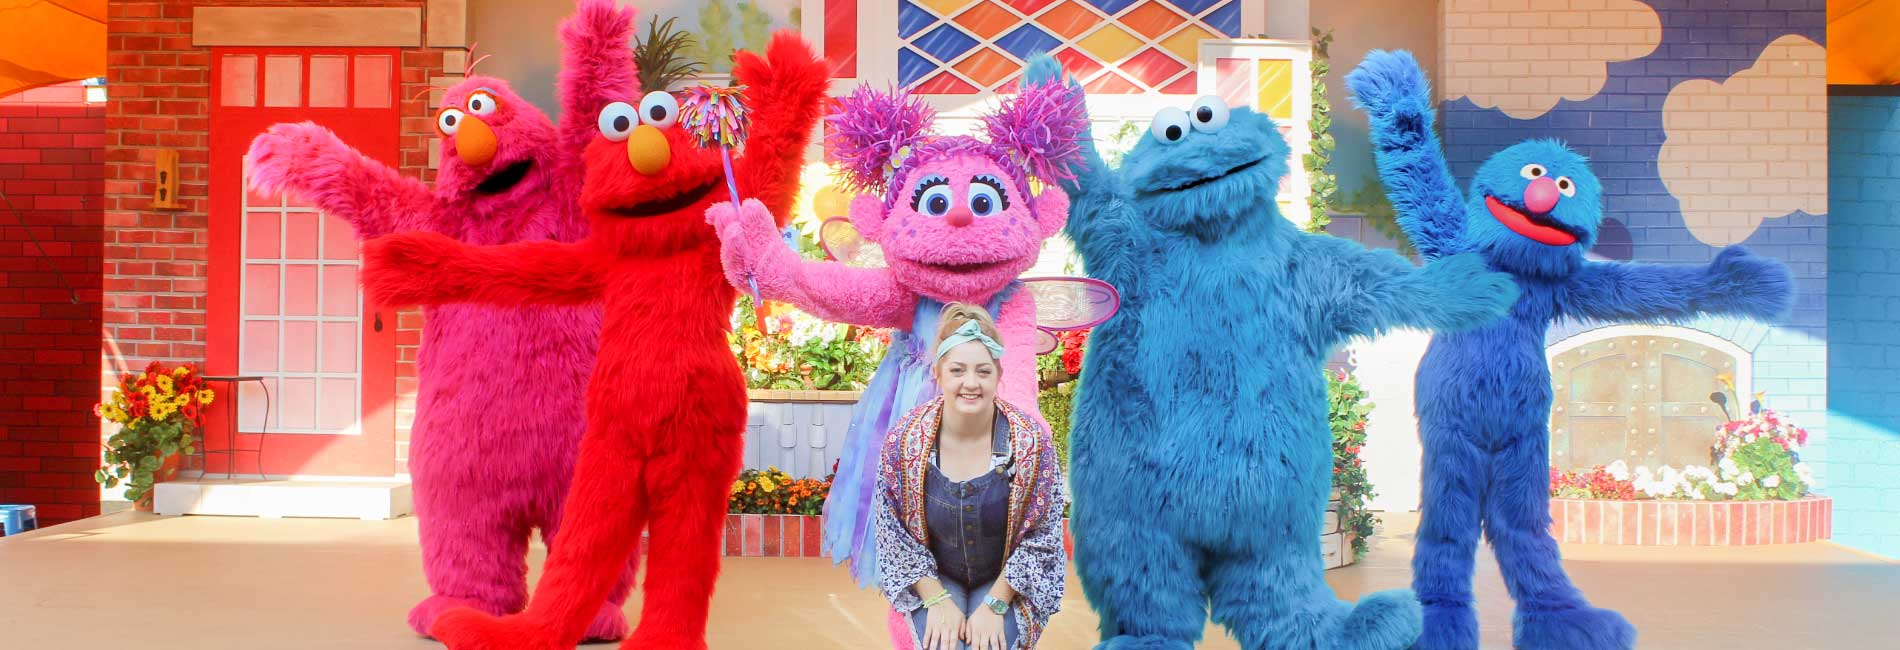 Telly Monster, Elmo, Abby Cadabby, Cookie Monster, Grover and a guest in The Magic of Art - live on stage at Sesame Place theme park